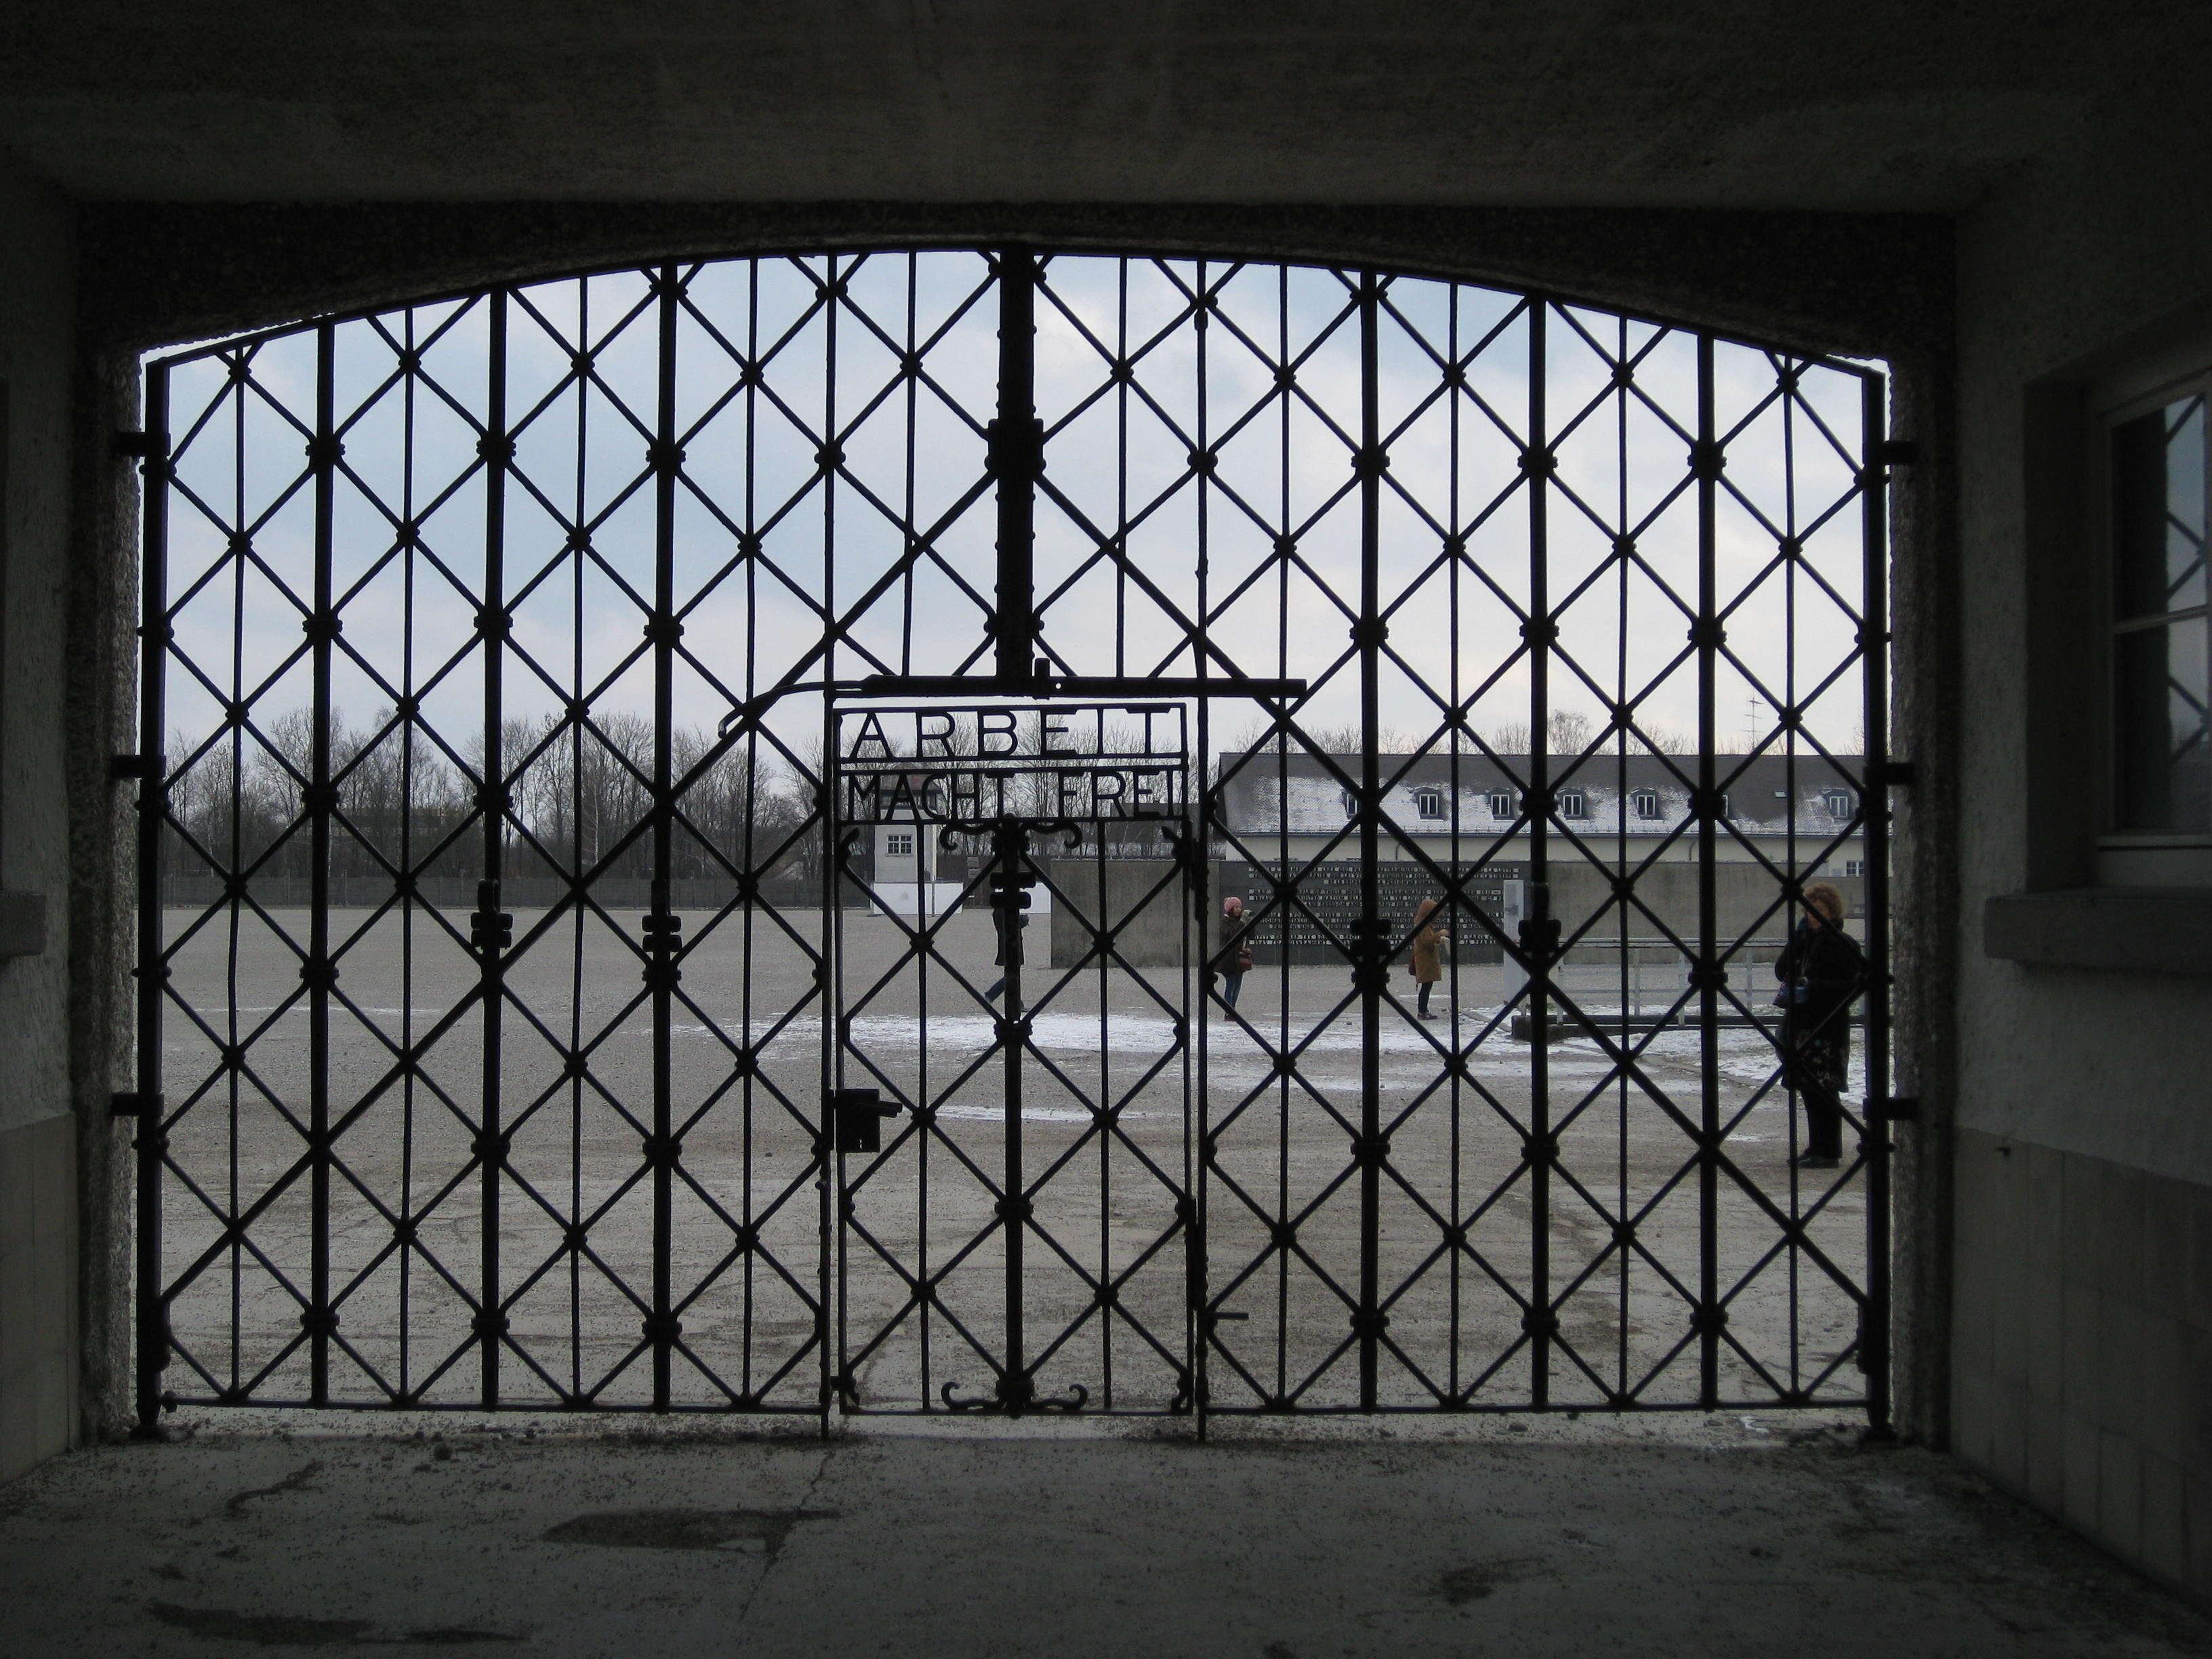 dachau concentration camp As germany struggles to house thousands of new refugees, we talk to those living in the grounds of the former dachau concentration camp.